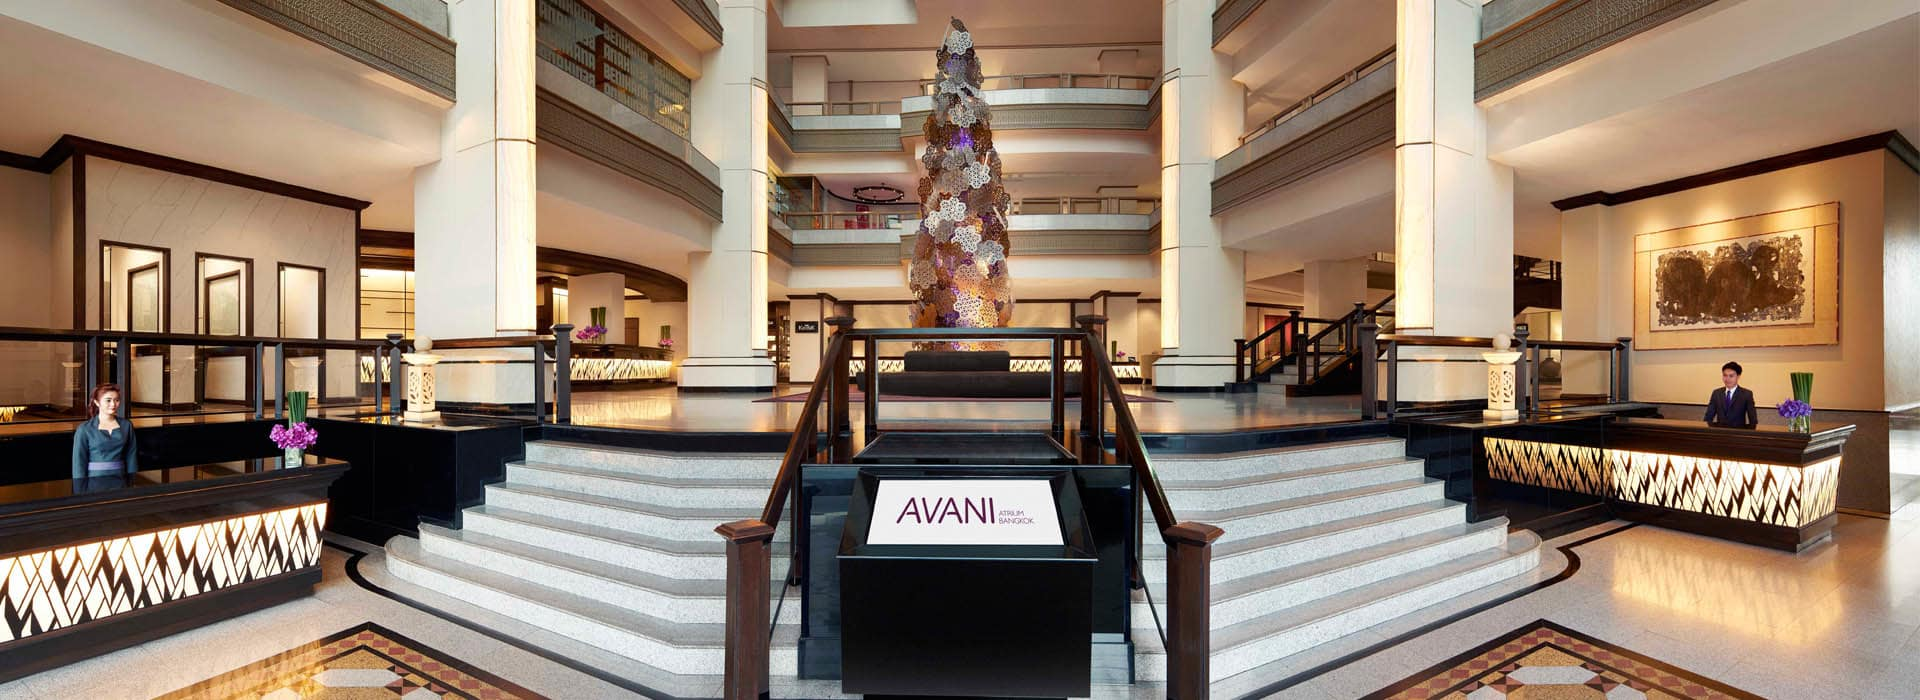 Enjoy best hotel deals Bangkok with AVANI Atrium